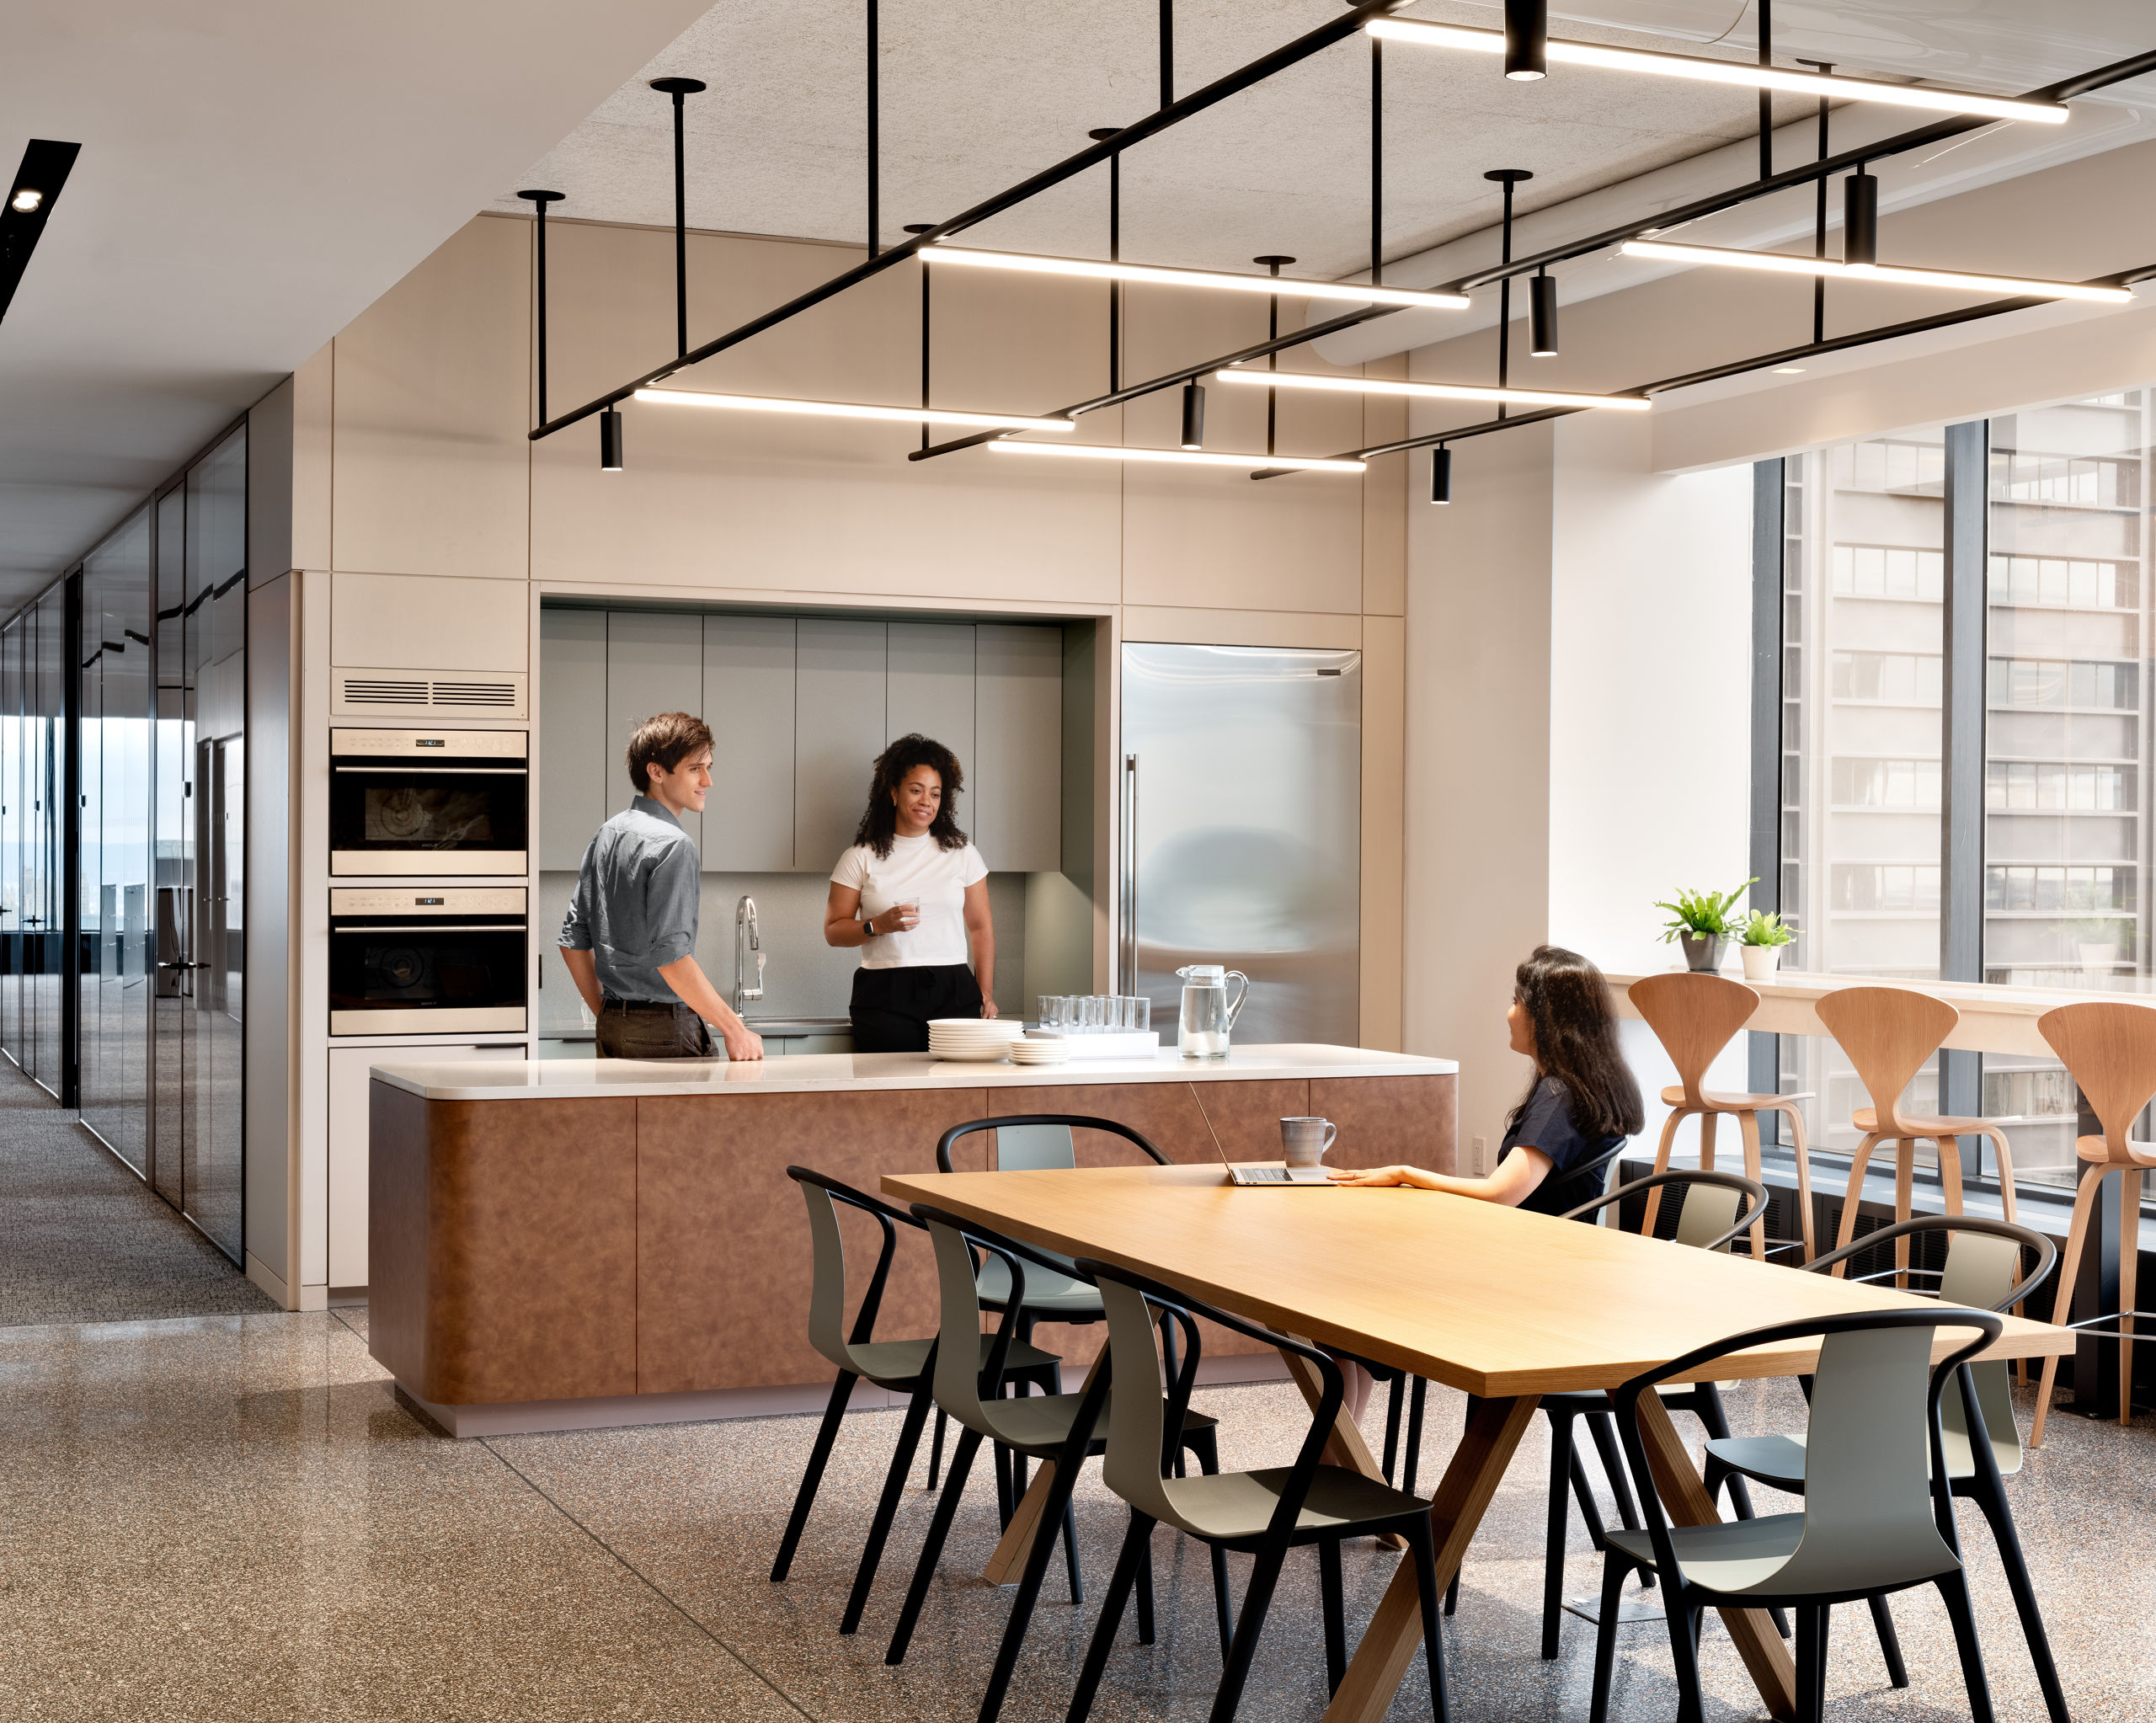 Wallace Foundation kitchen with two people at counter and one person at table